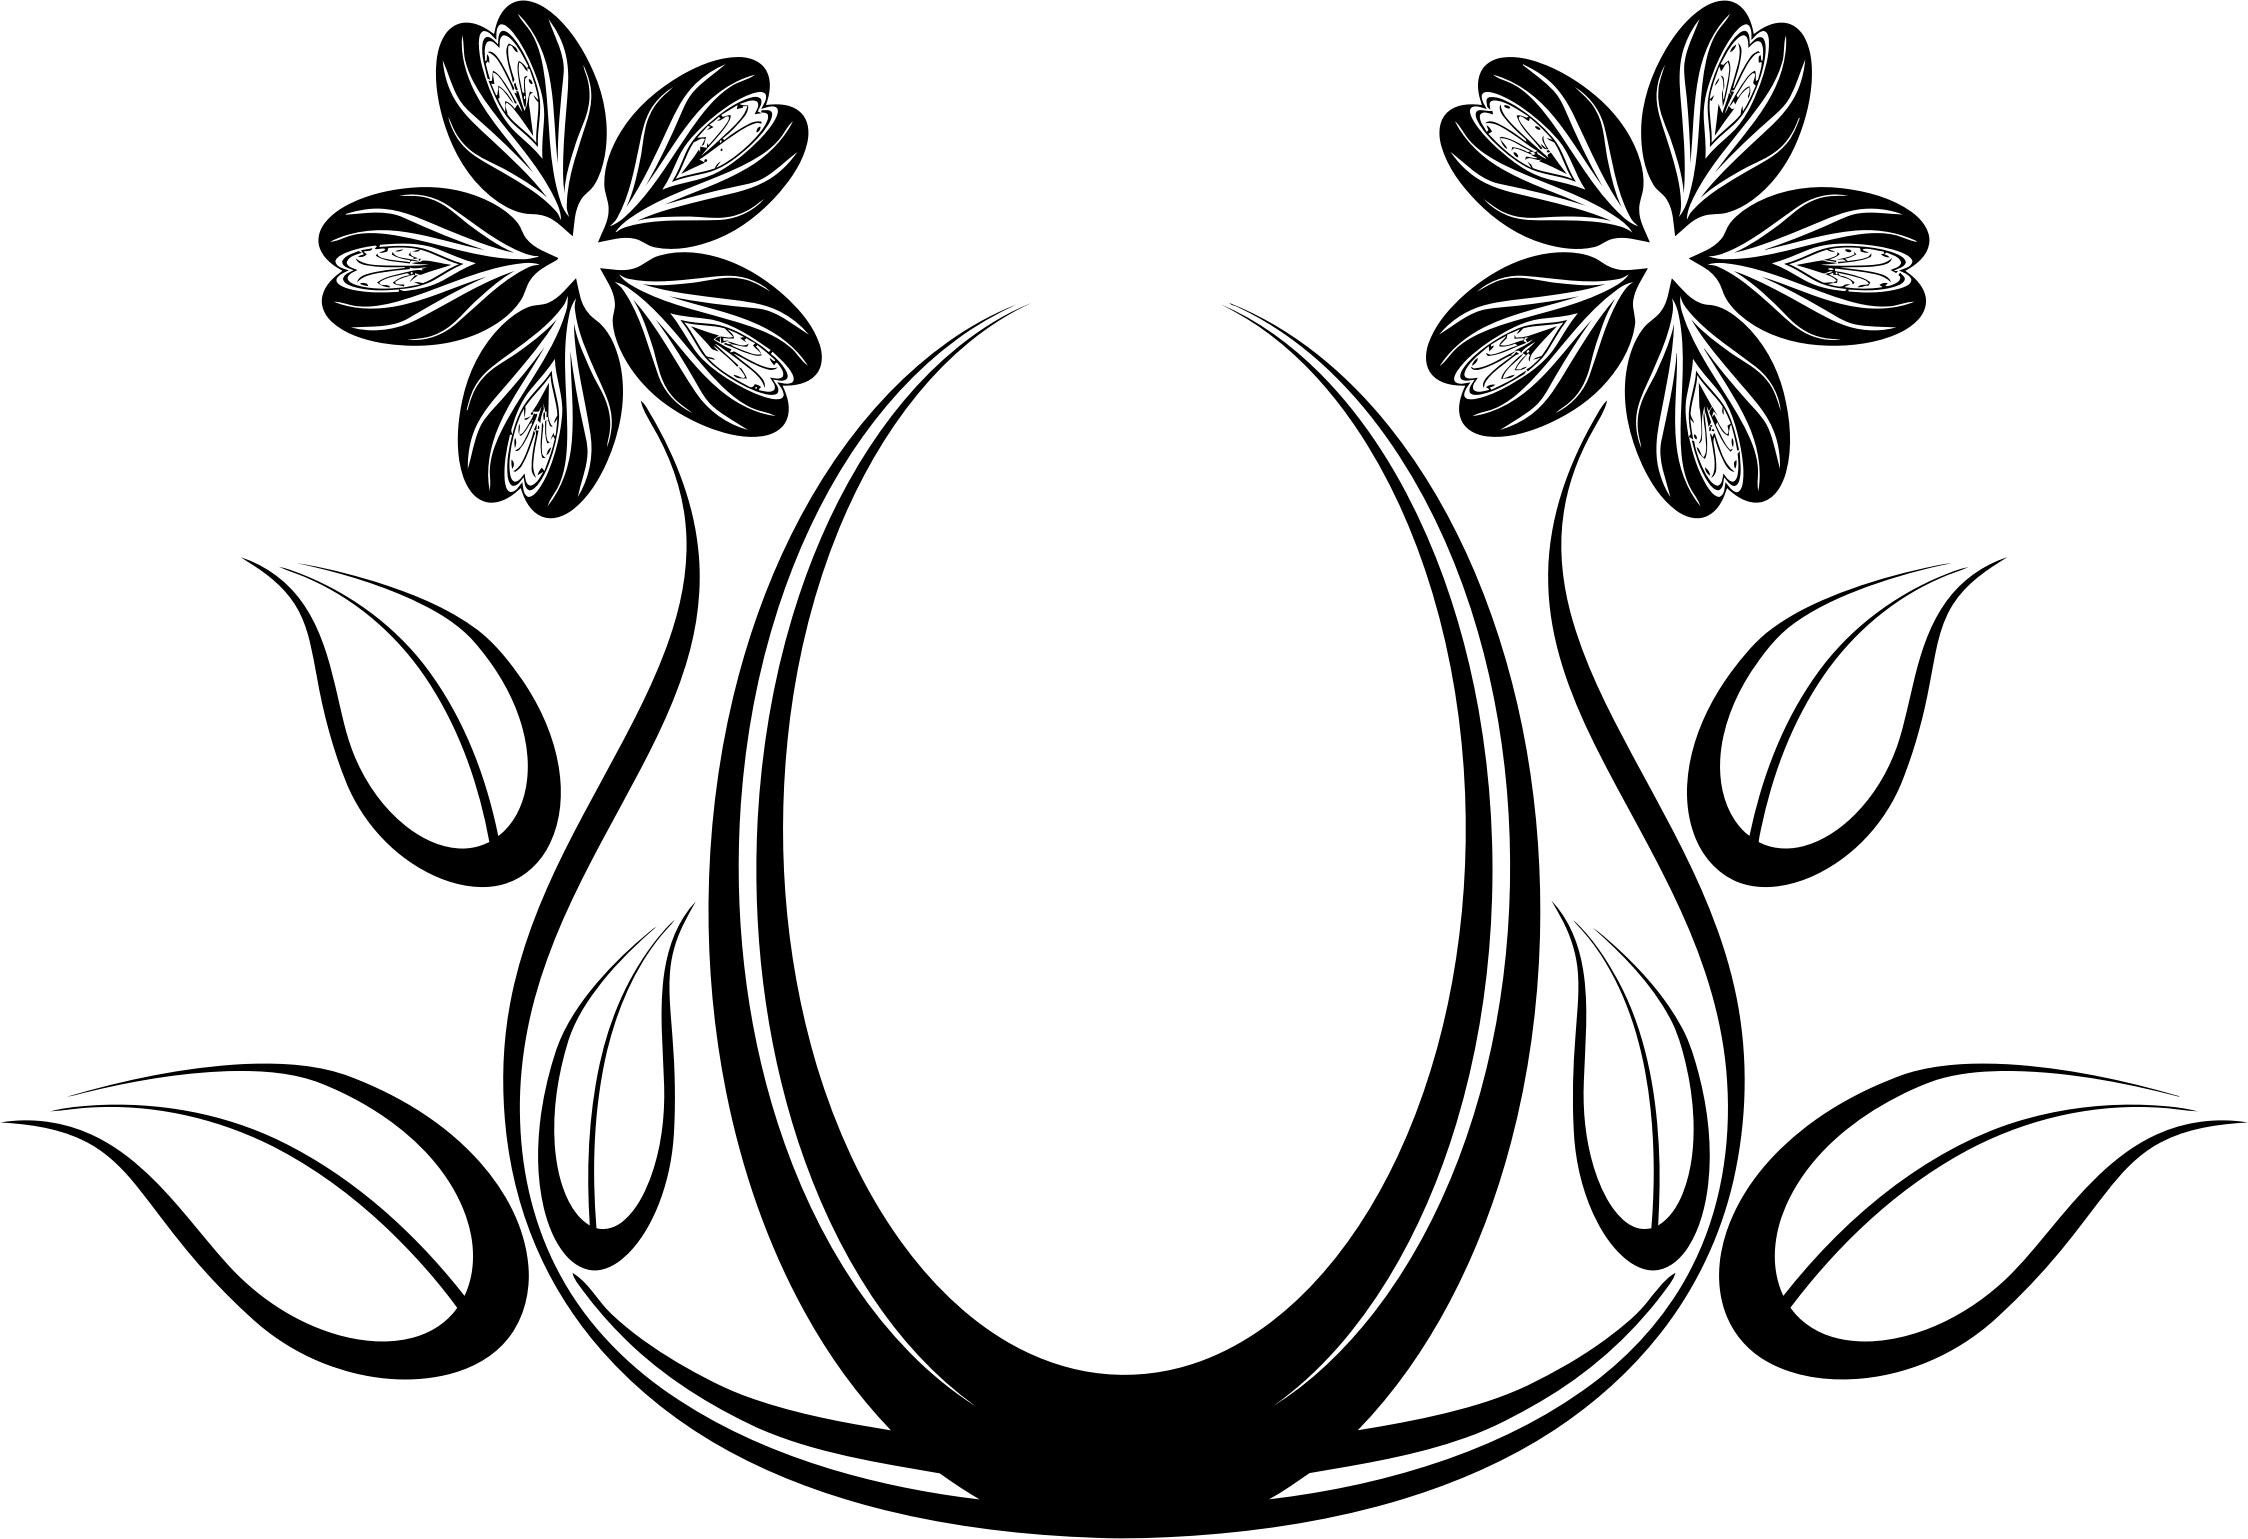 Abstract Floral Design Icons Png - Free Png And Icons Downloads for Black And White Flower Abstract Png 29918